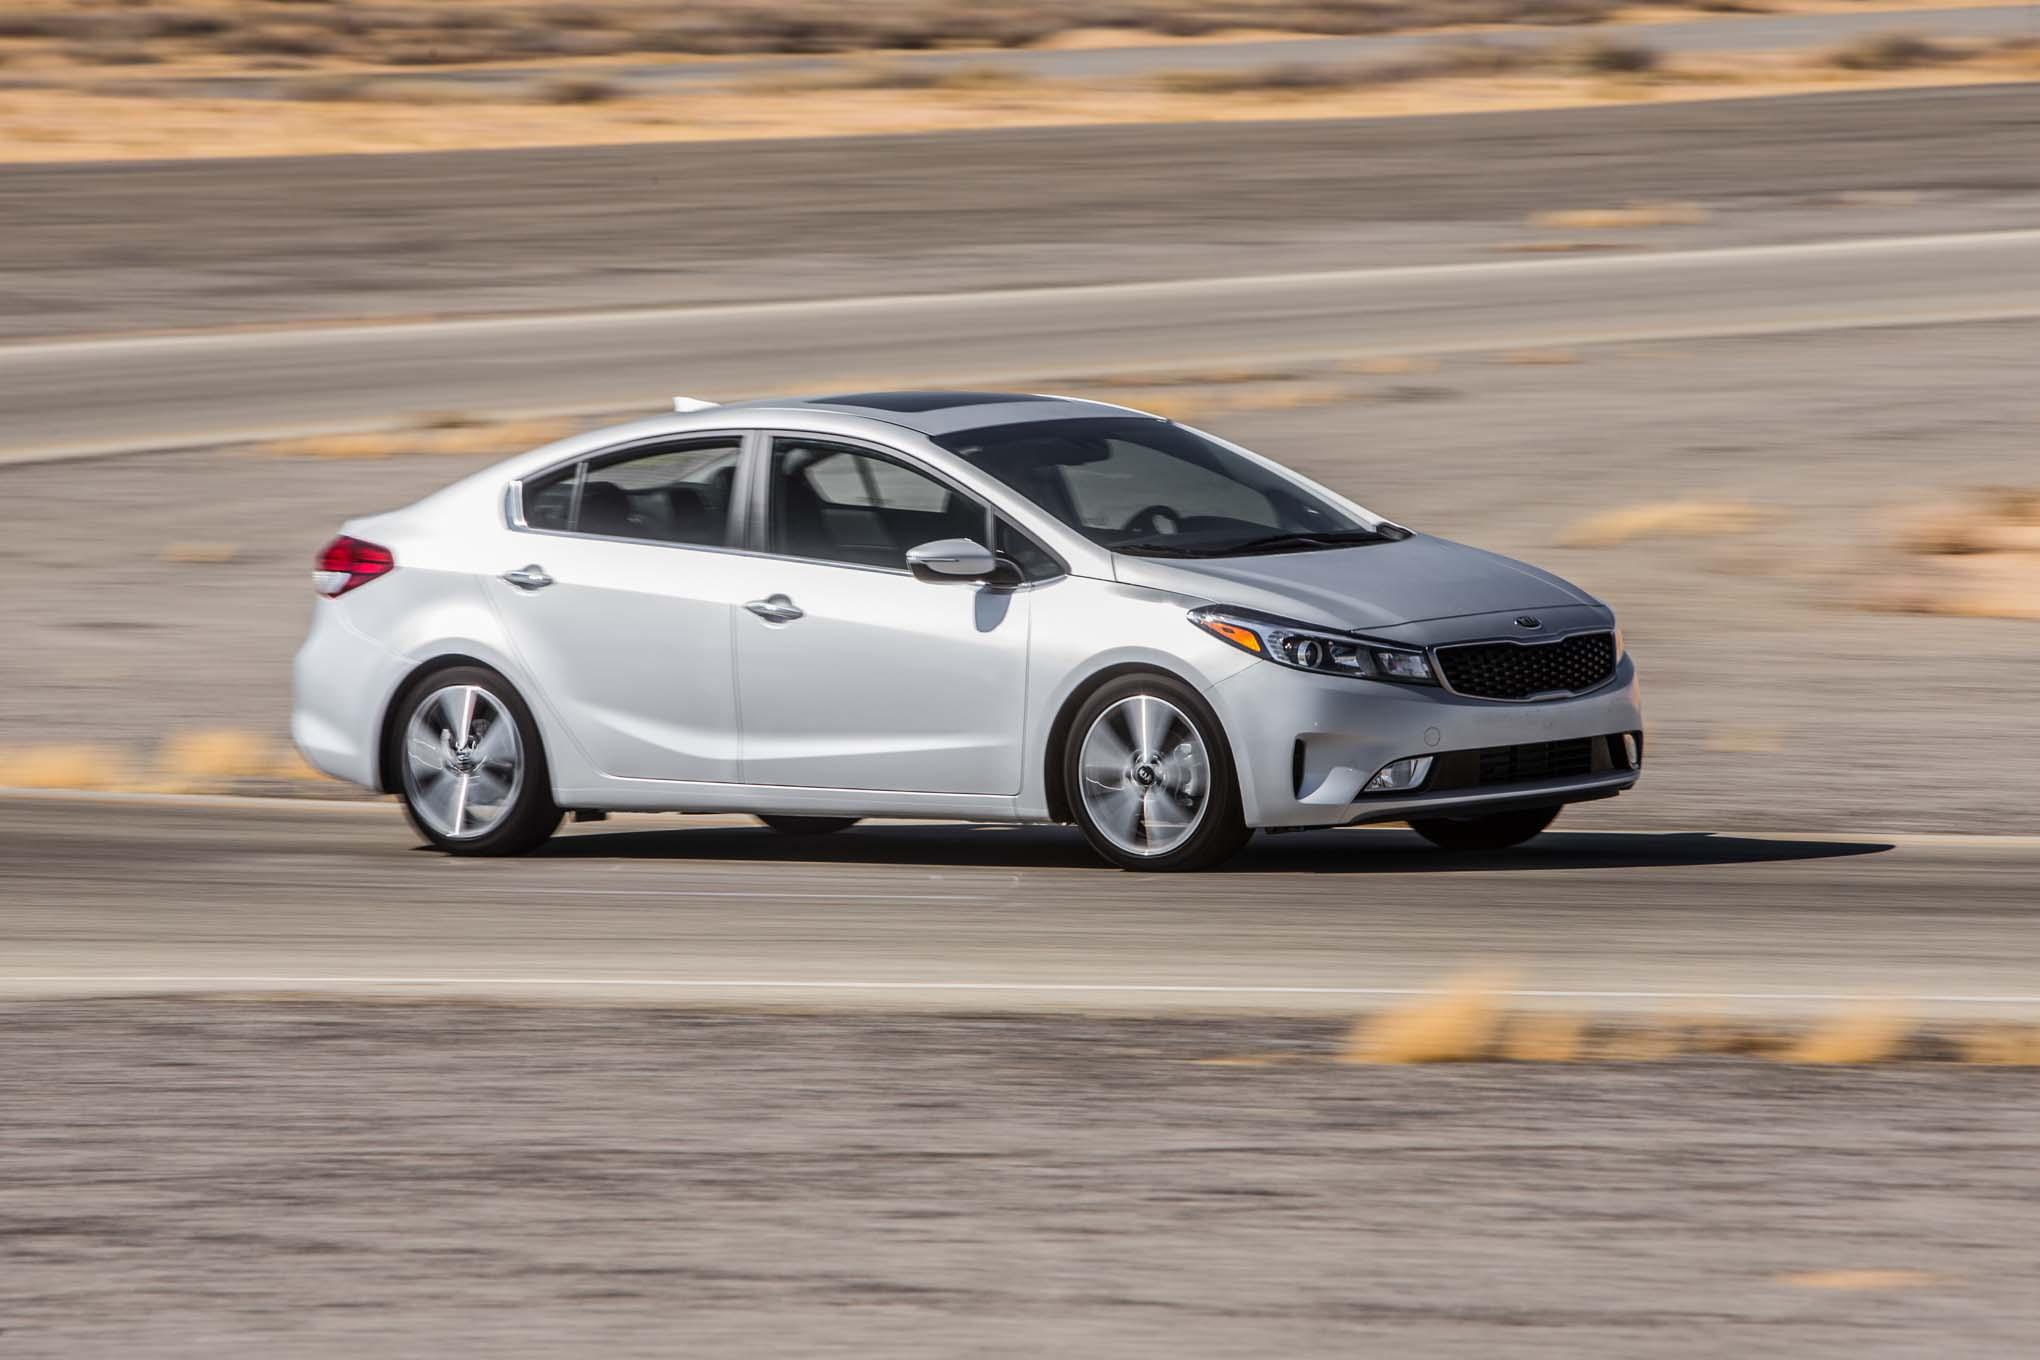 2017 Kia Forte EX front side in motion